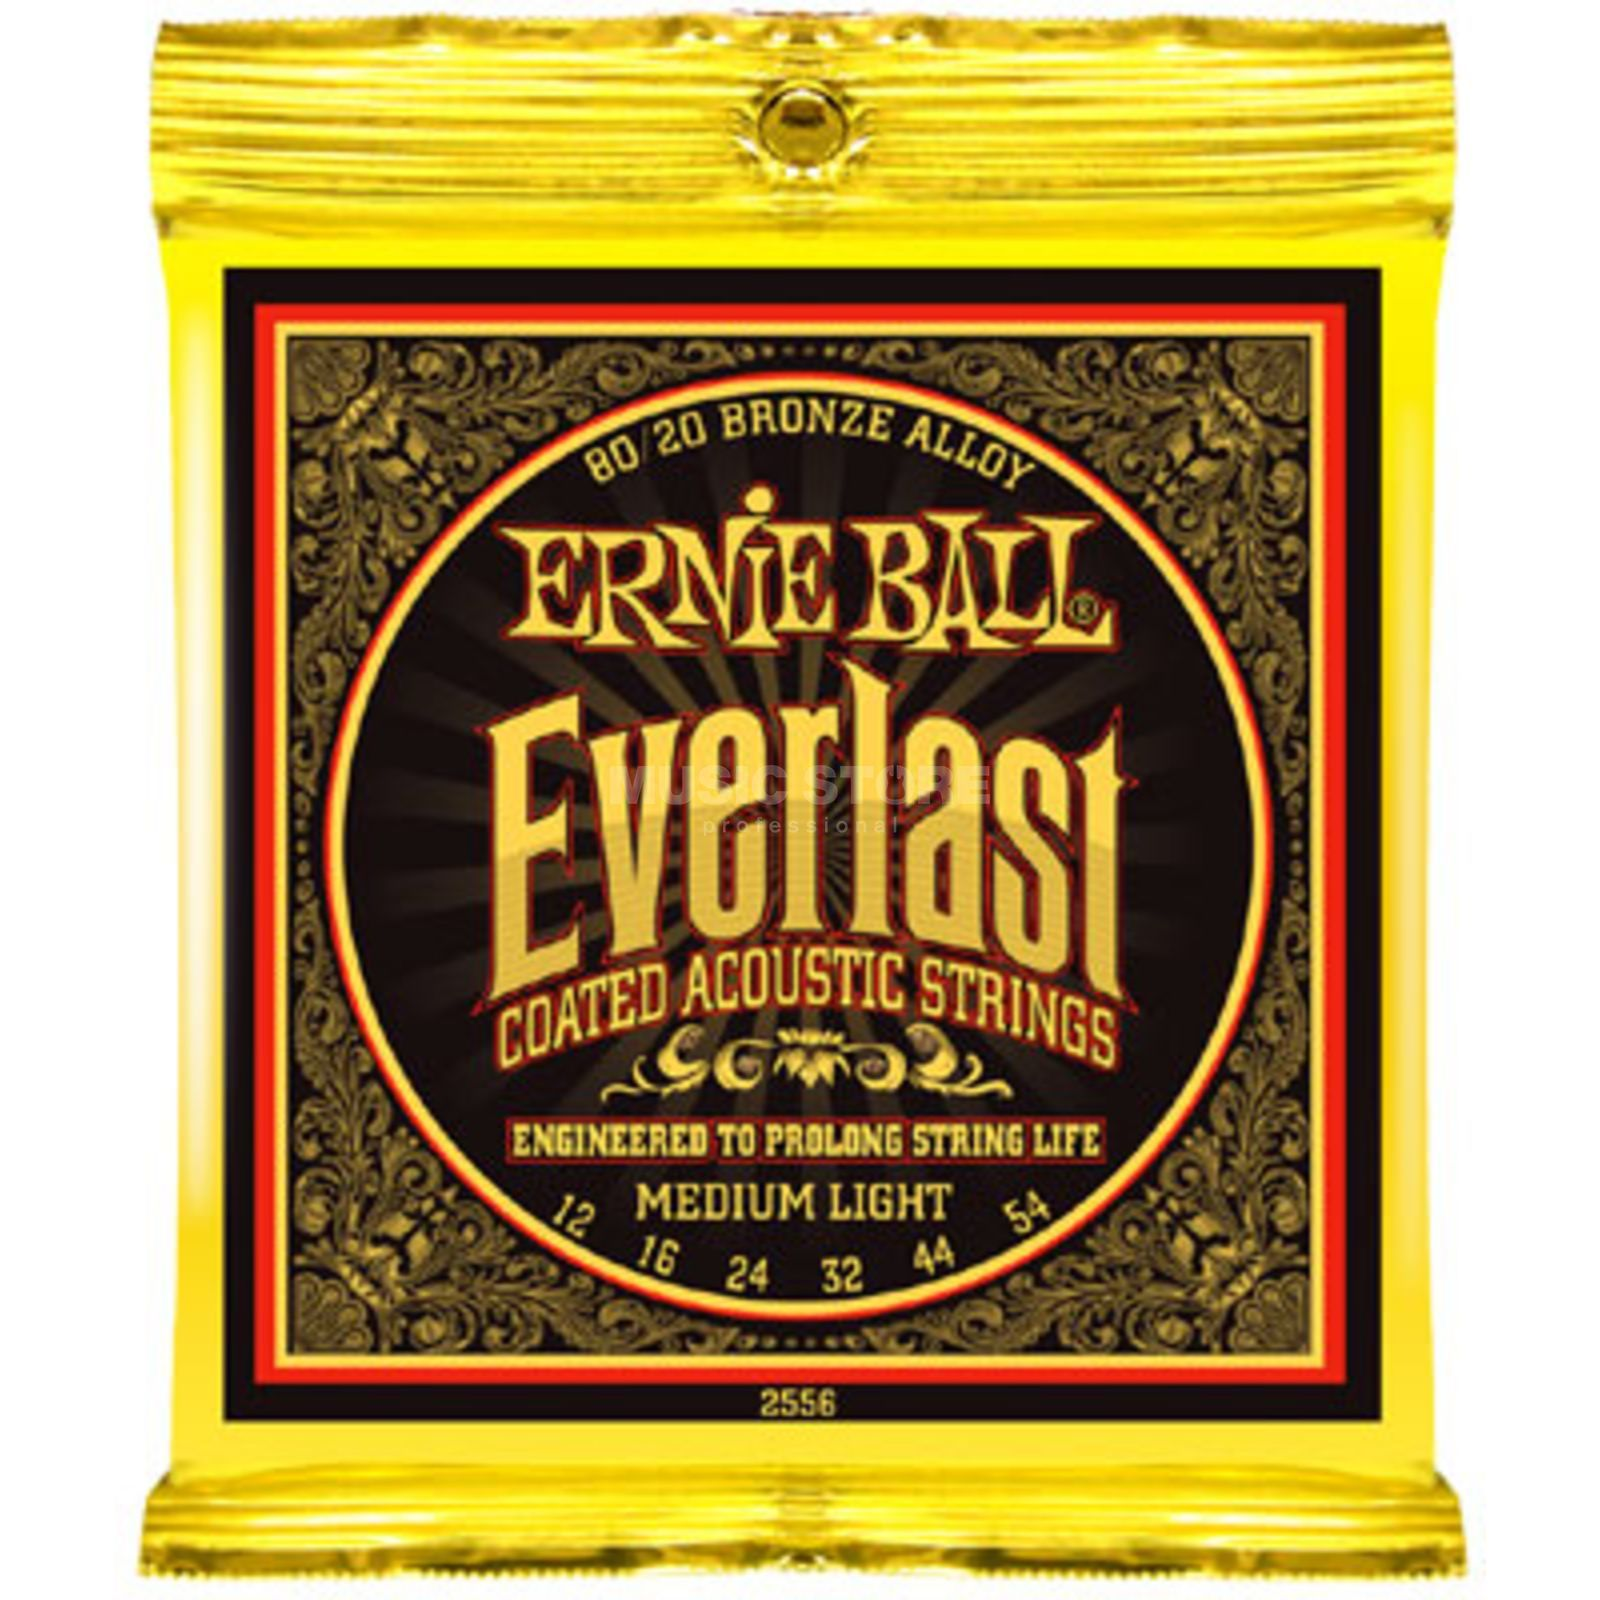 Ernie Ball EB2556 12-54 Everlast Coated 80/20 Bronze Medium Light Produktbild